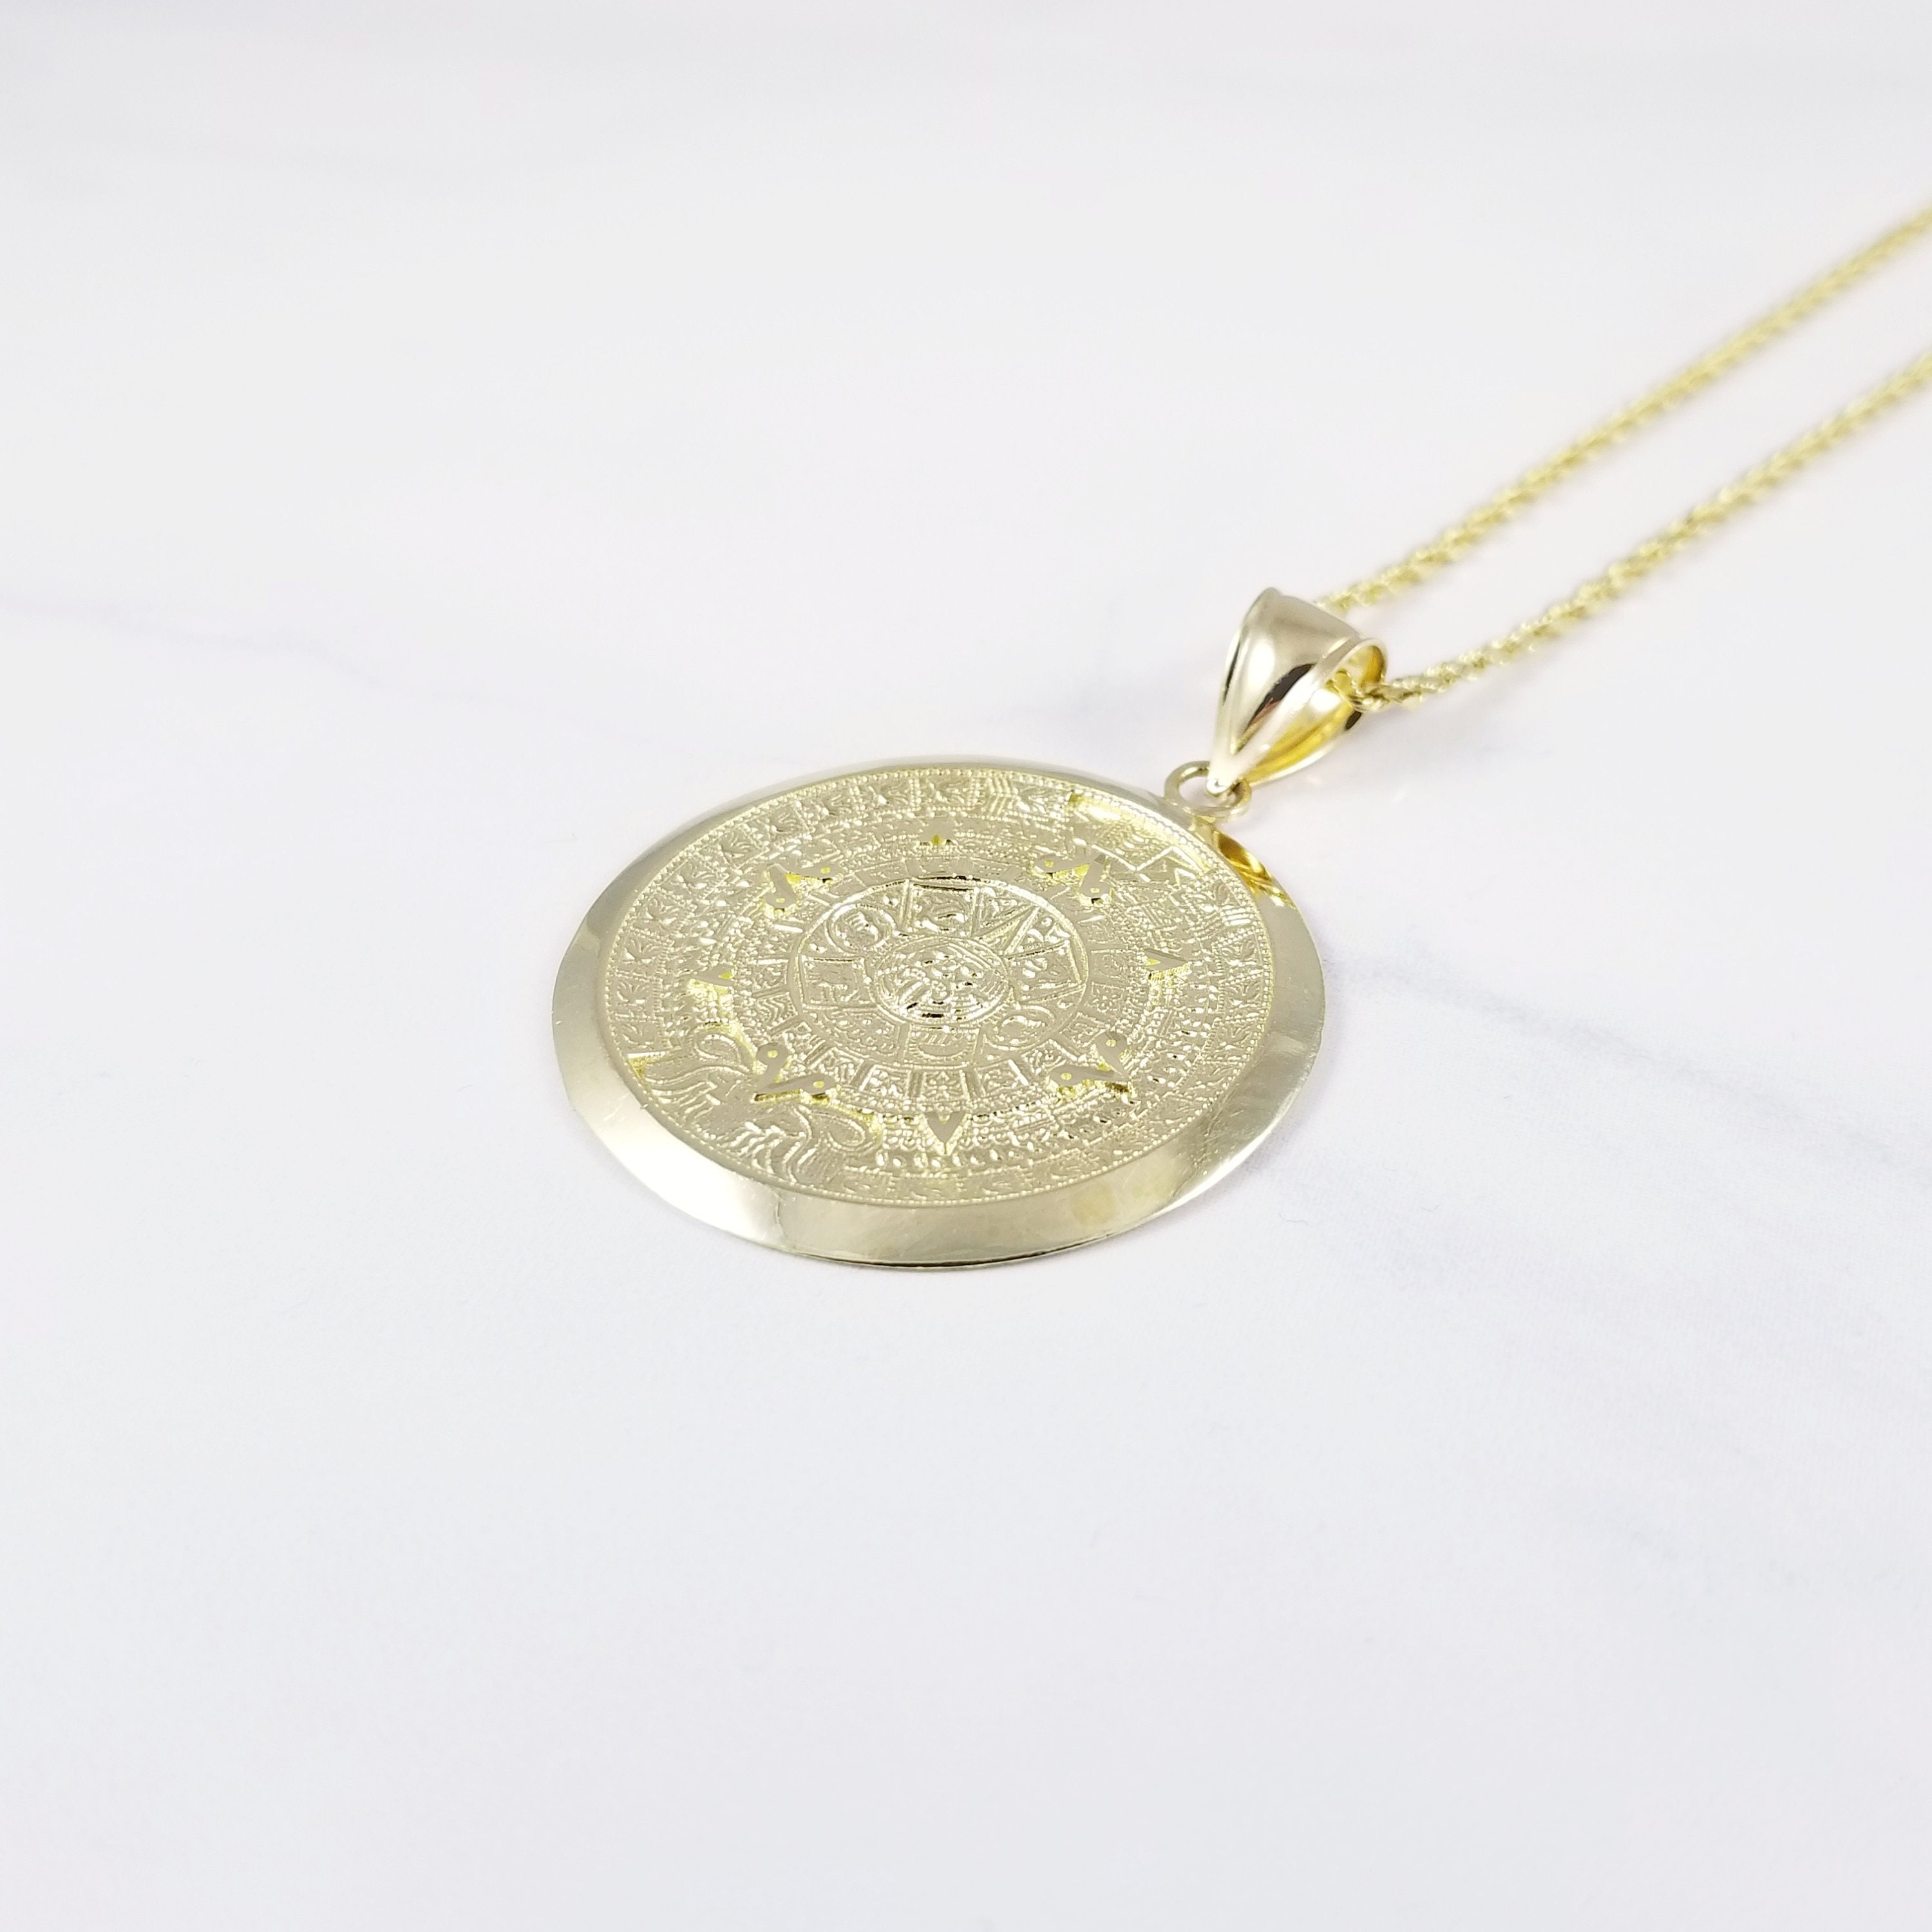 14k solid yellow gold aztec calendar pendant sun medal necklace charm aloadofball Image collections